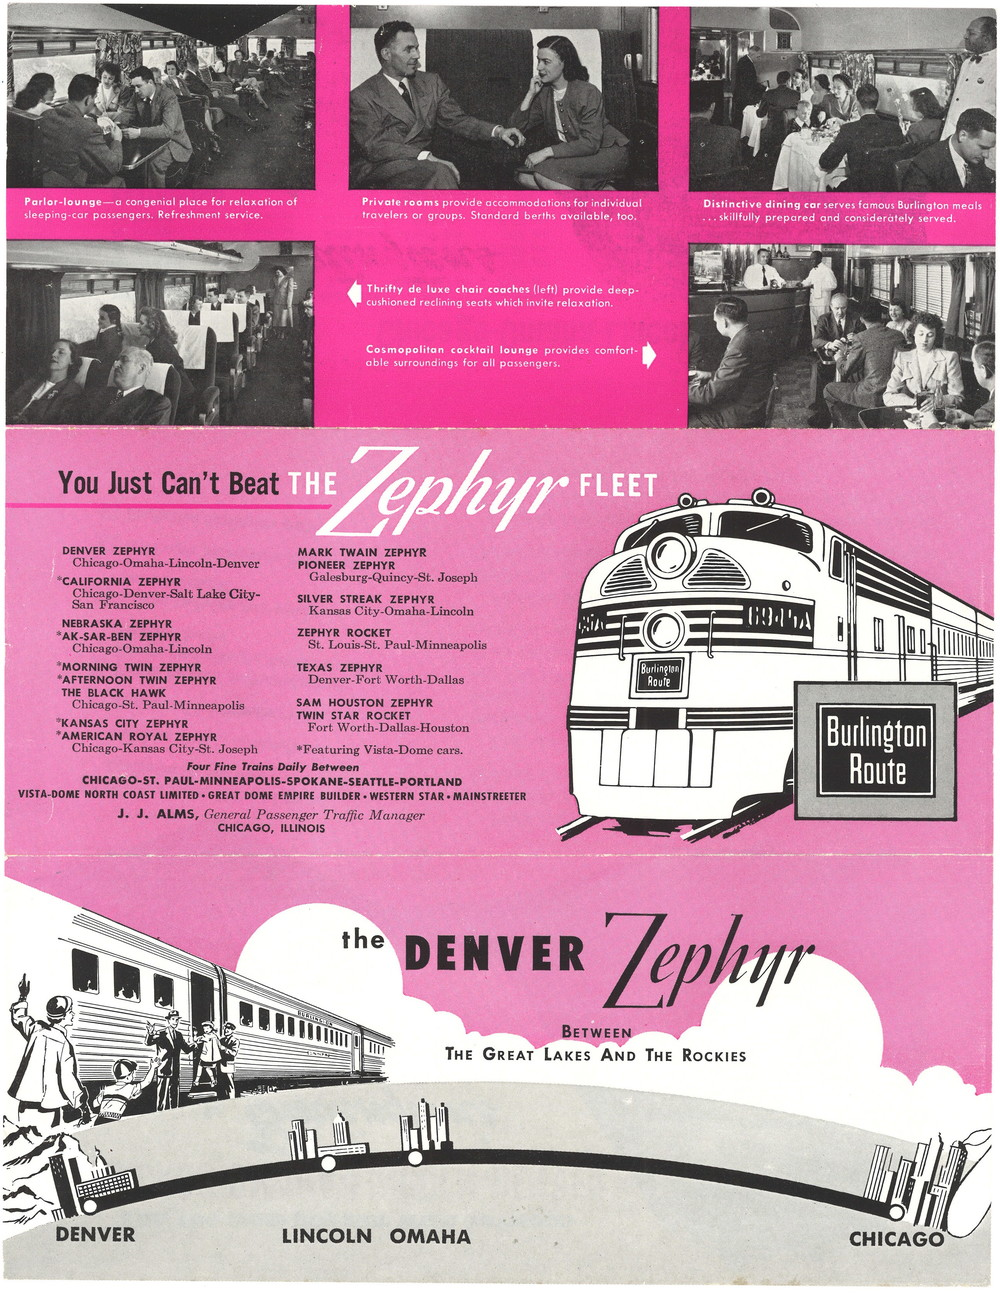 You Just Can't Beat The Denver Zephyr Fleet .jpg